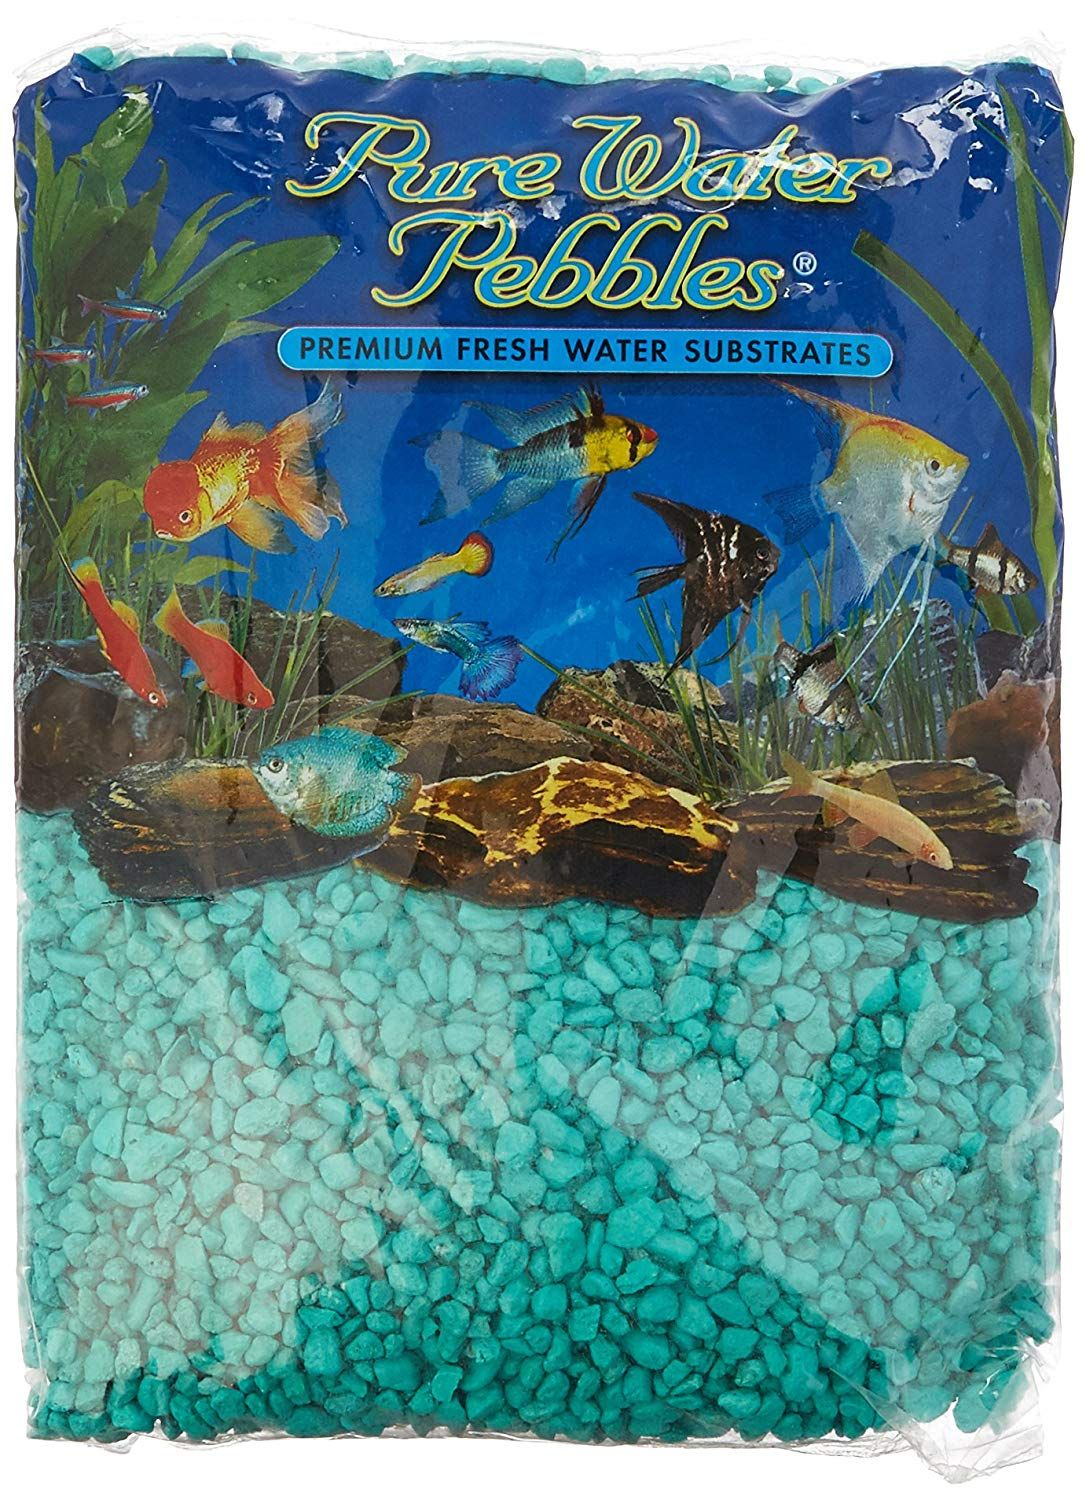 Pure Water Pebbles Aquarium Gravel 5 Pound Turquoise See The Photo Link Even More Details This Is An Affiliate Aquarium Gravel Fish Tank Gravel Aquarium